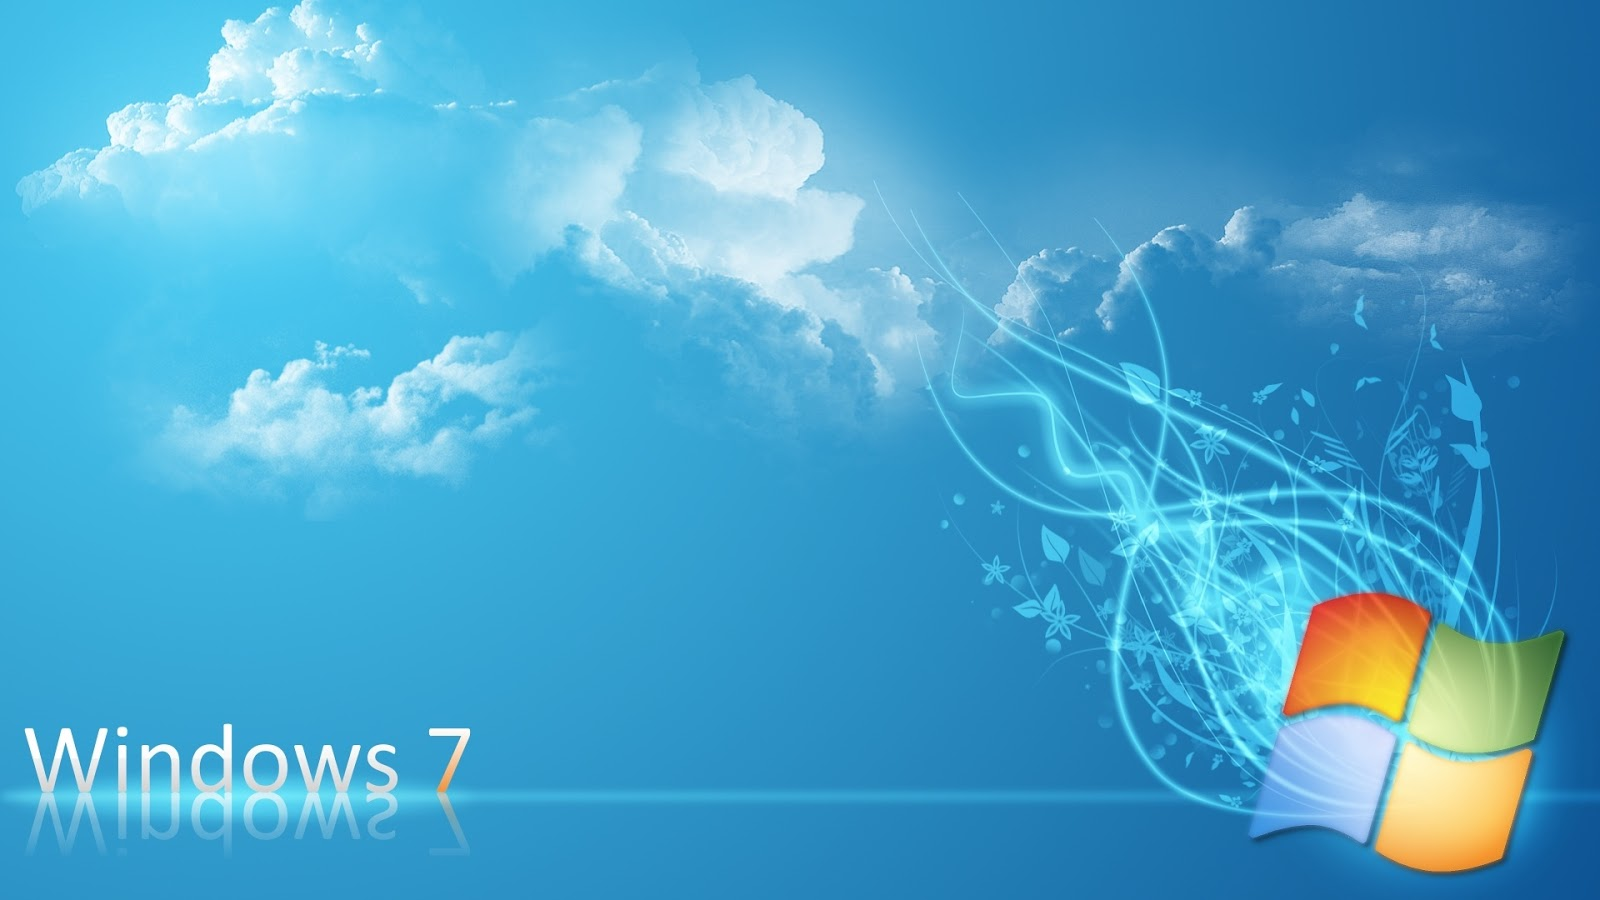 Wallpaper downloader for windows 7 - Windows 7 Wallpaper 005 Click The Image To Enlarge Before Downloading It